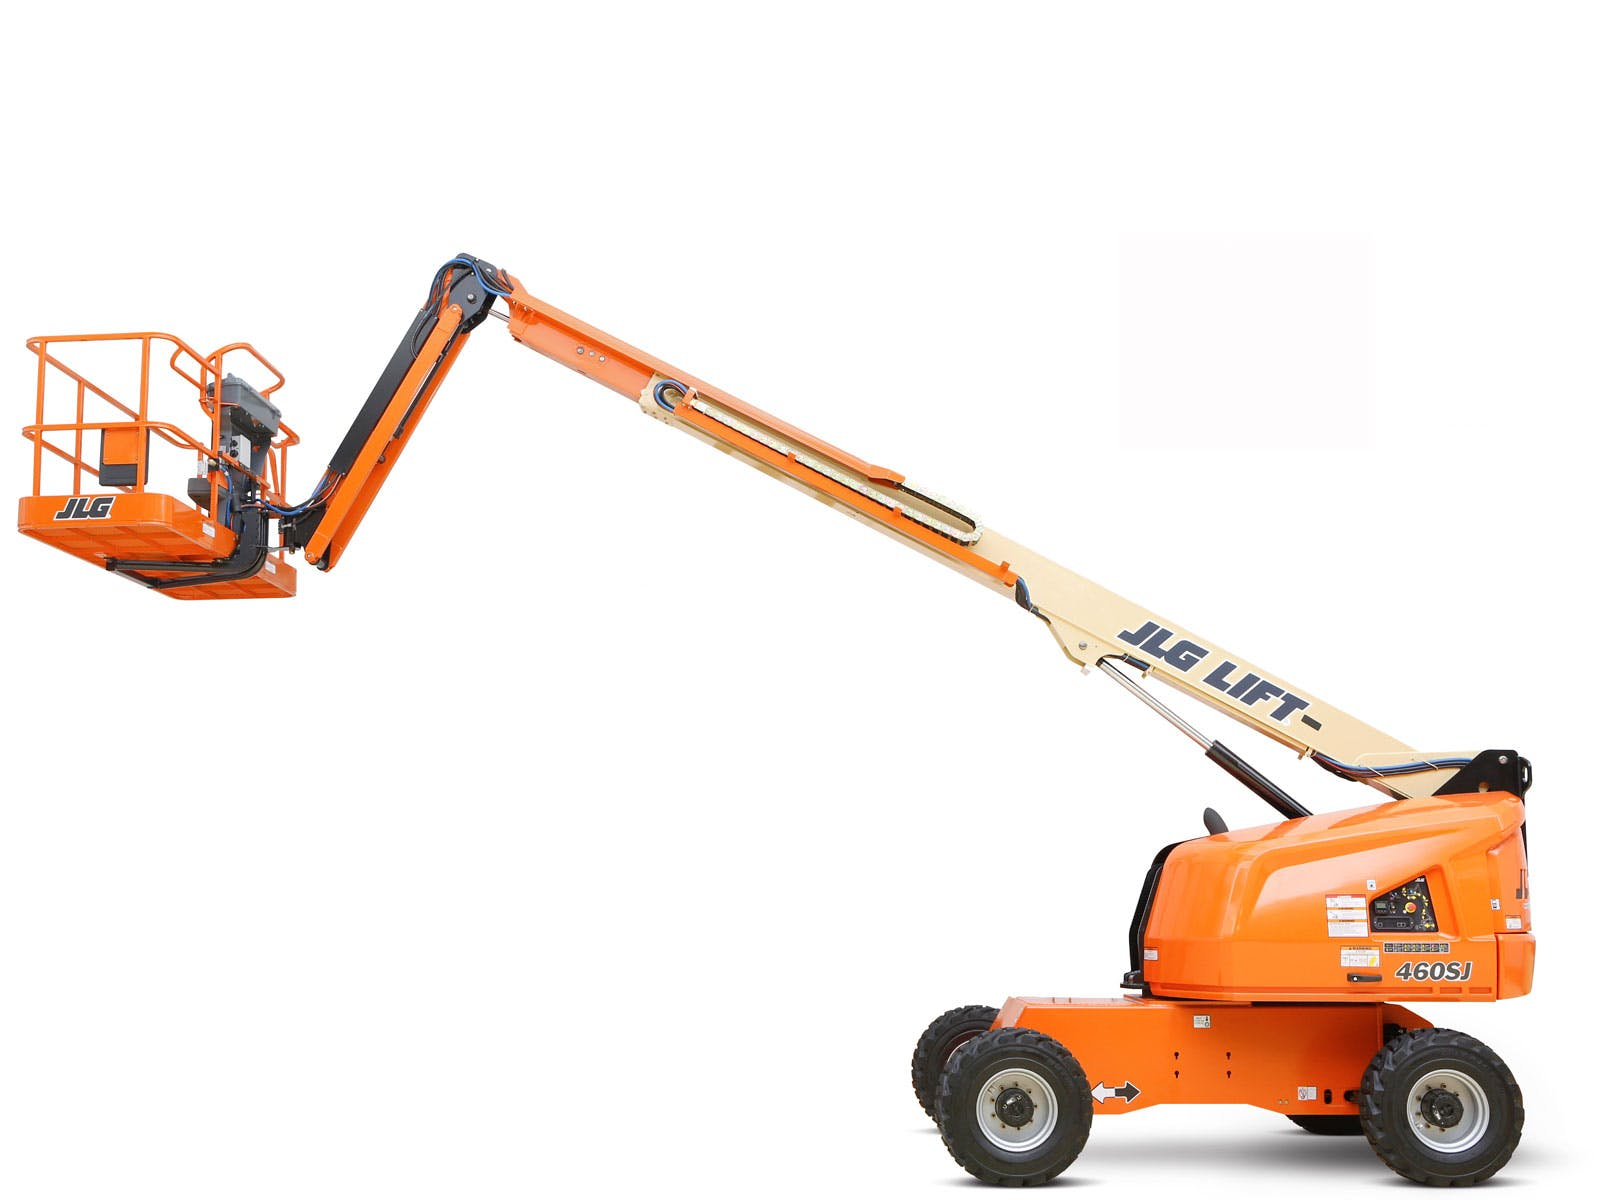 Telescopic 46' Boom Lift